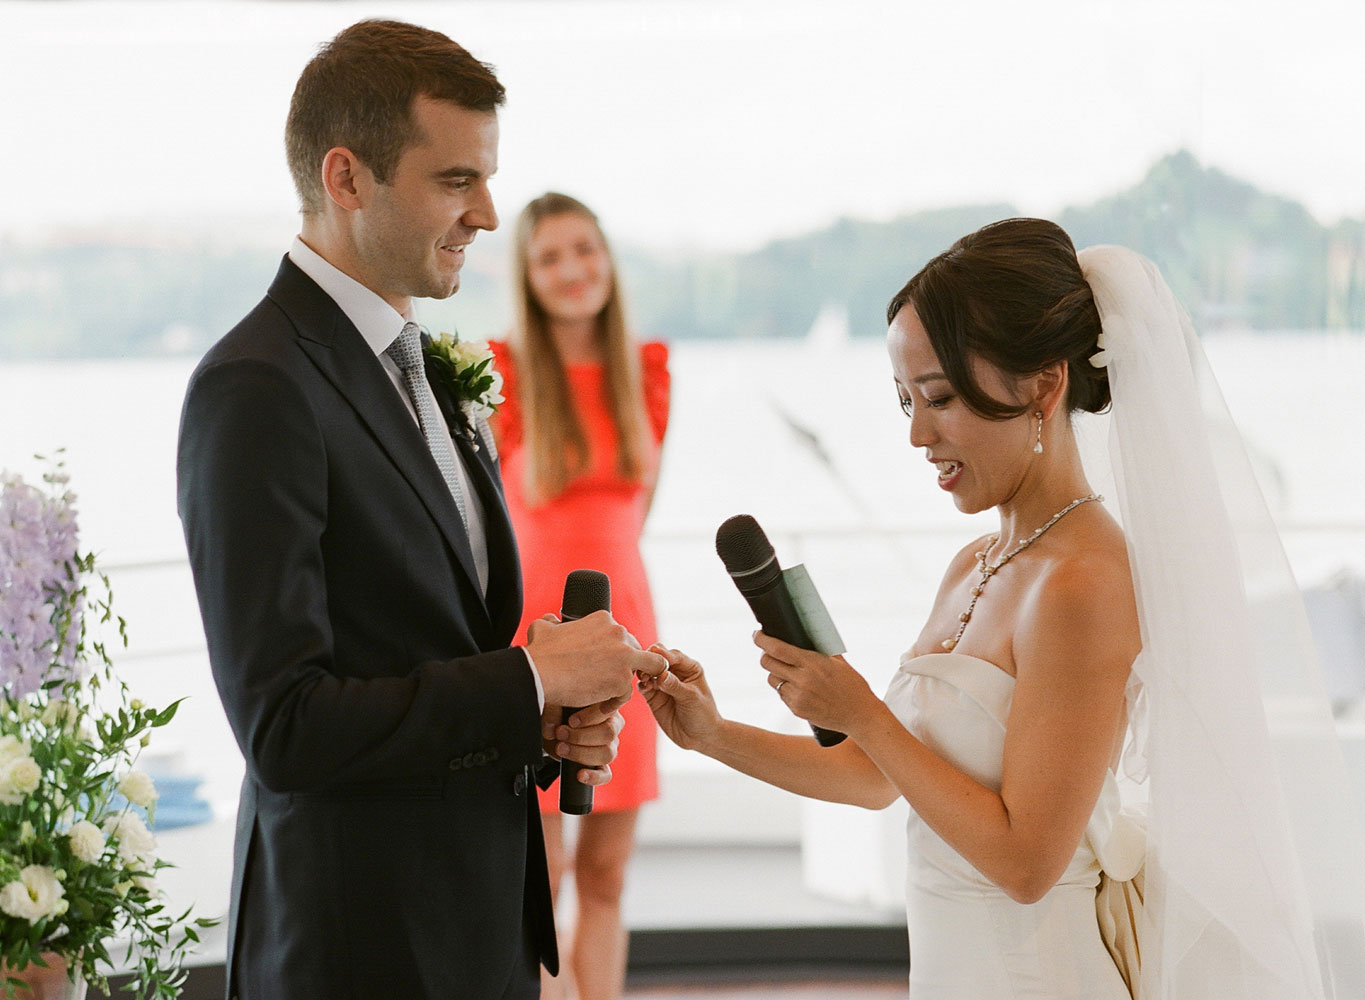 wedding_photographer_luzern_vitznau_06.jpg